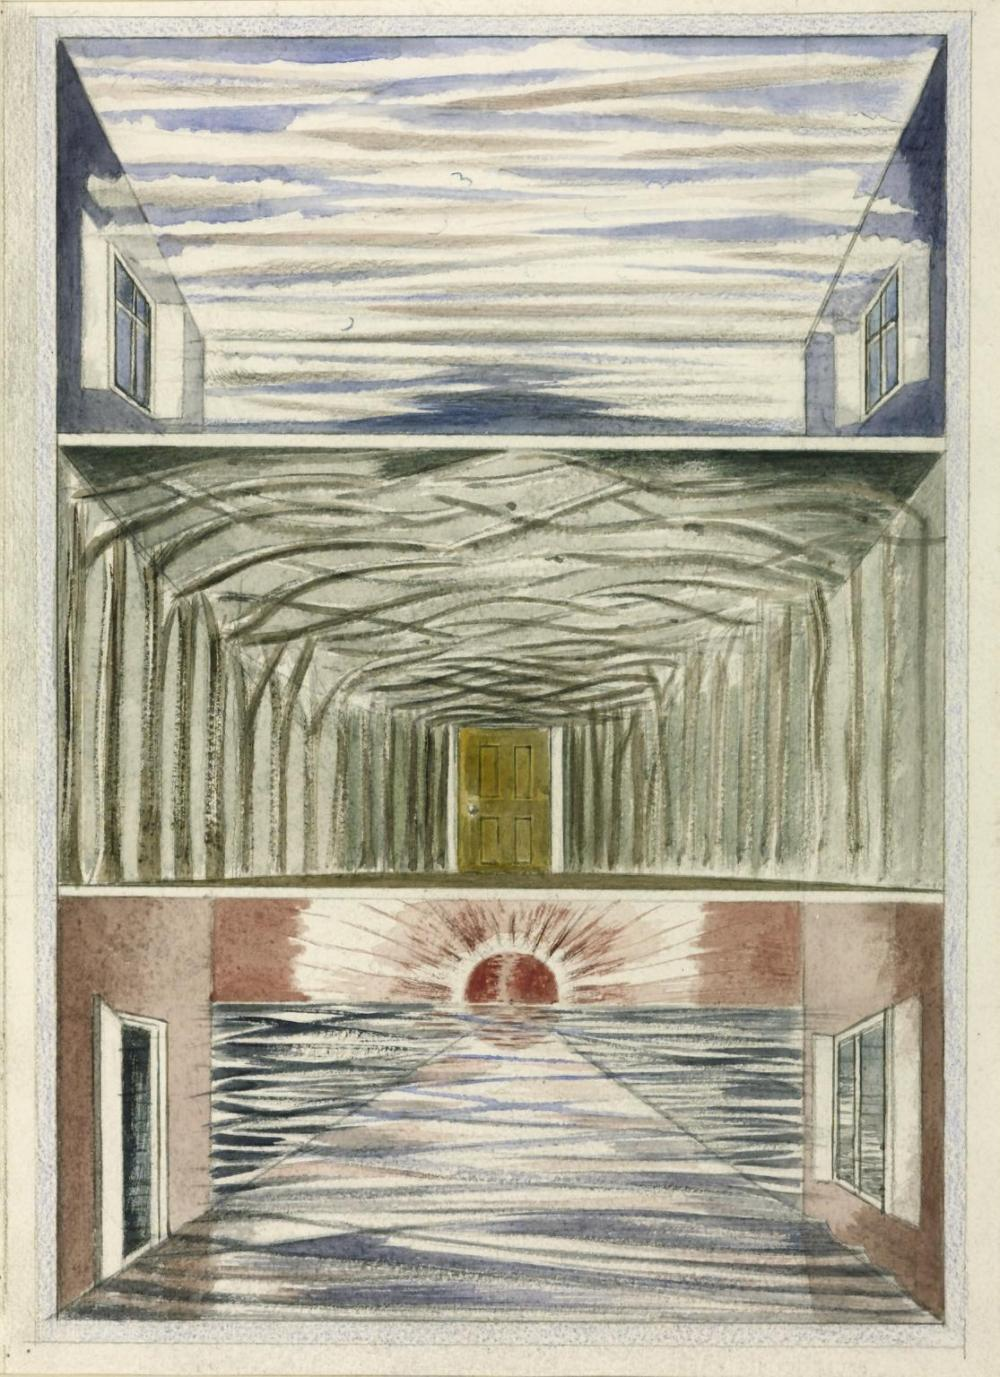 Three Rooms 1937 by Paul Nash 1889-1946